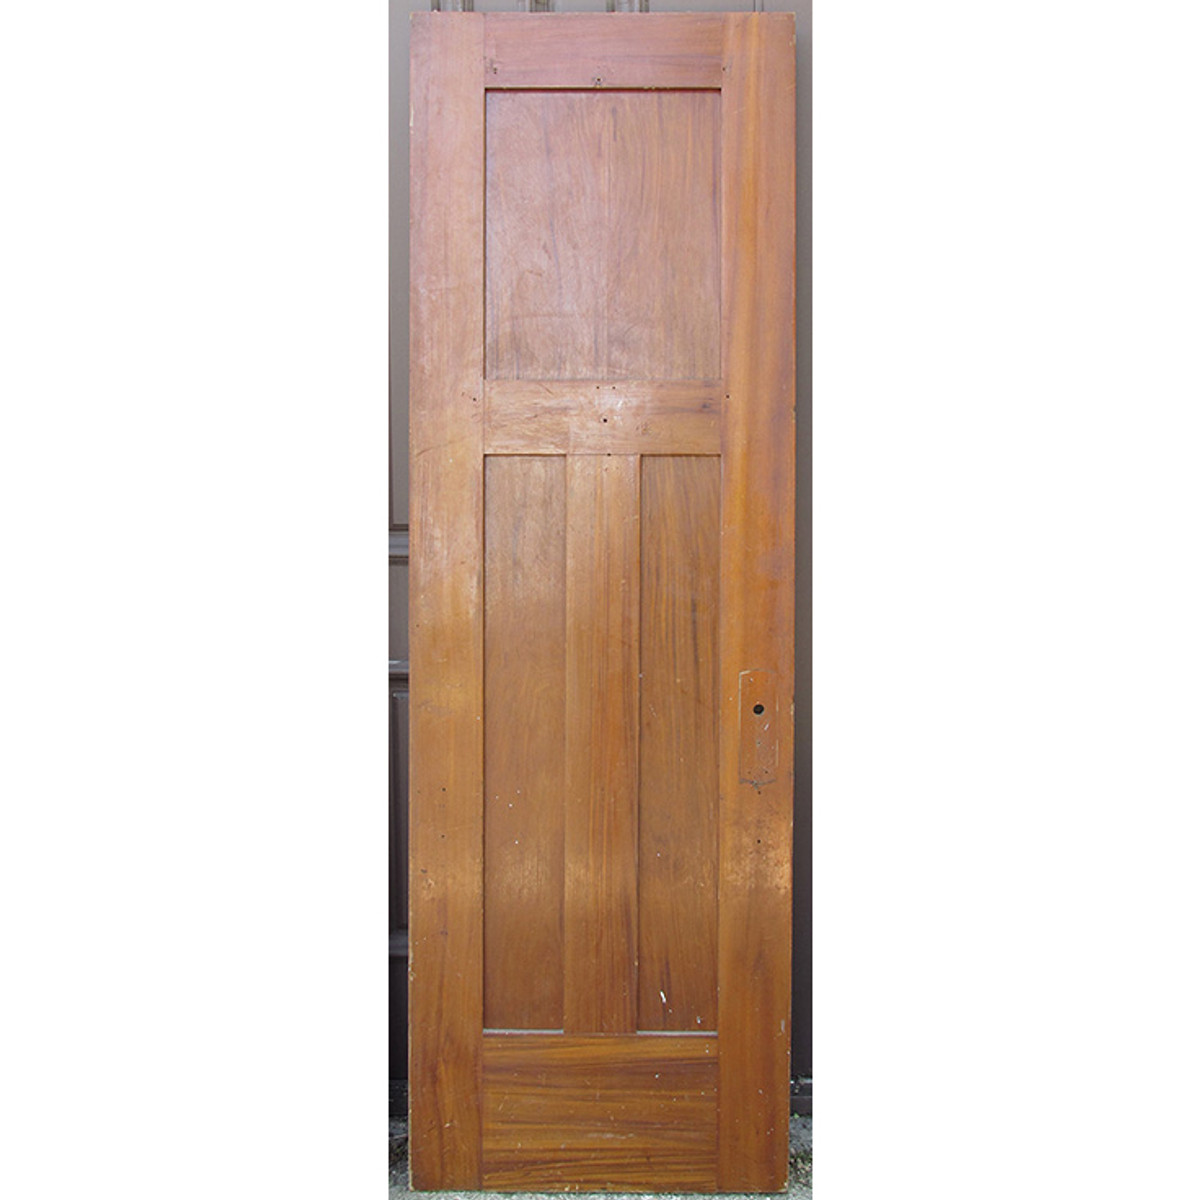 D15113 antique three panel interior door 26 x 79 d15113 antique three panel interior door 26 x planetlyrics Image collections